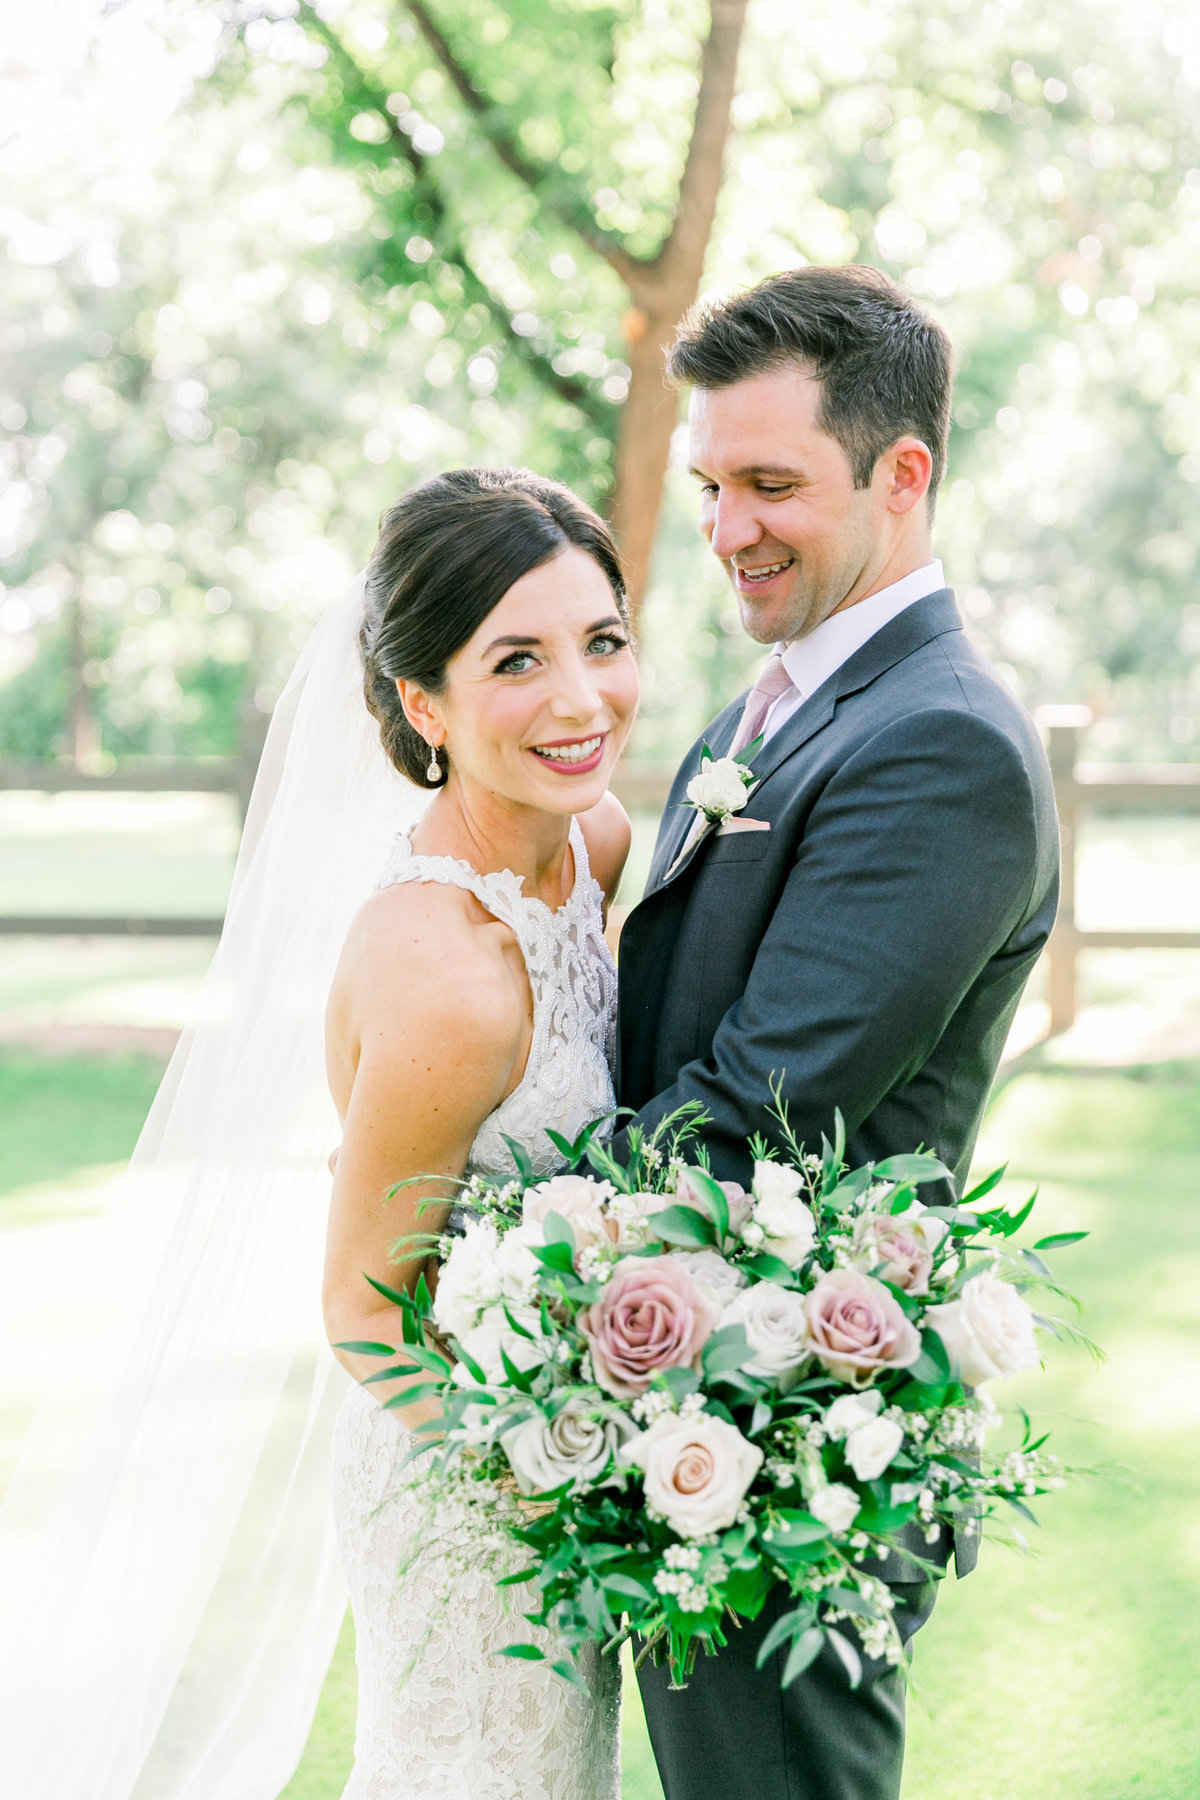 Karlie Colleen Photography - Arizona Wedding - Venue At The Grove - Maggie & Grant-446